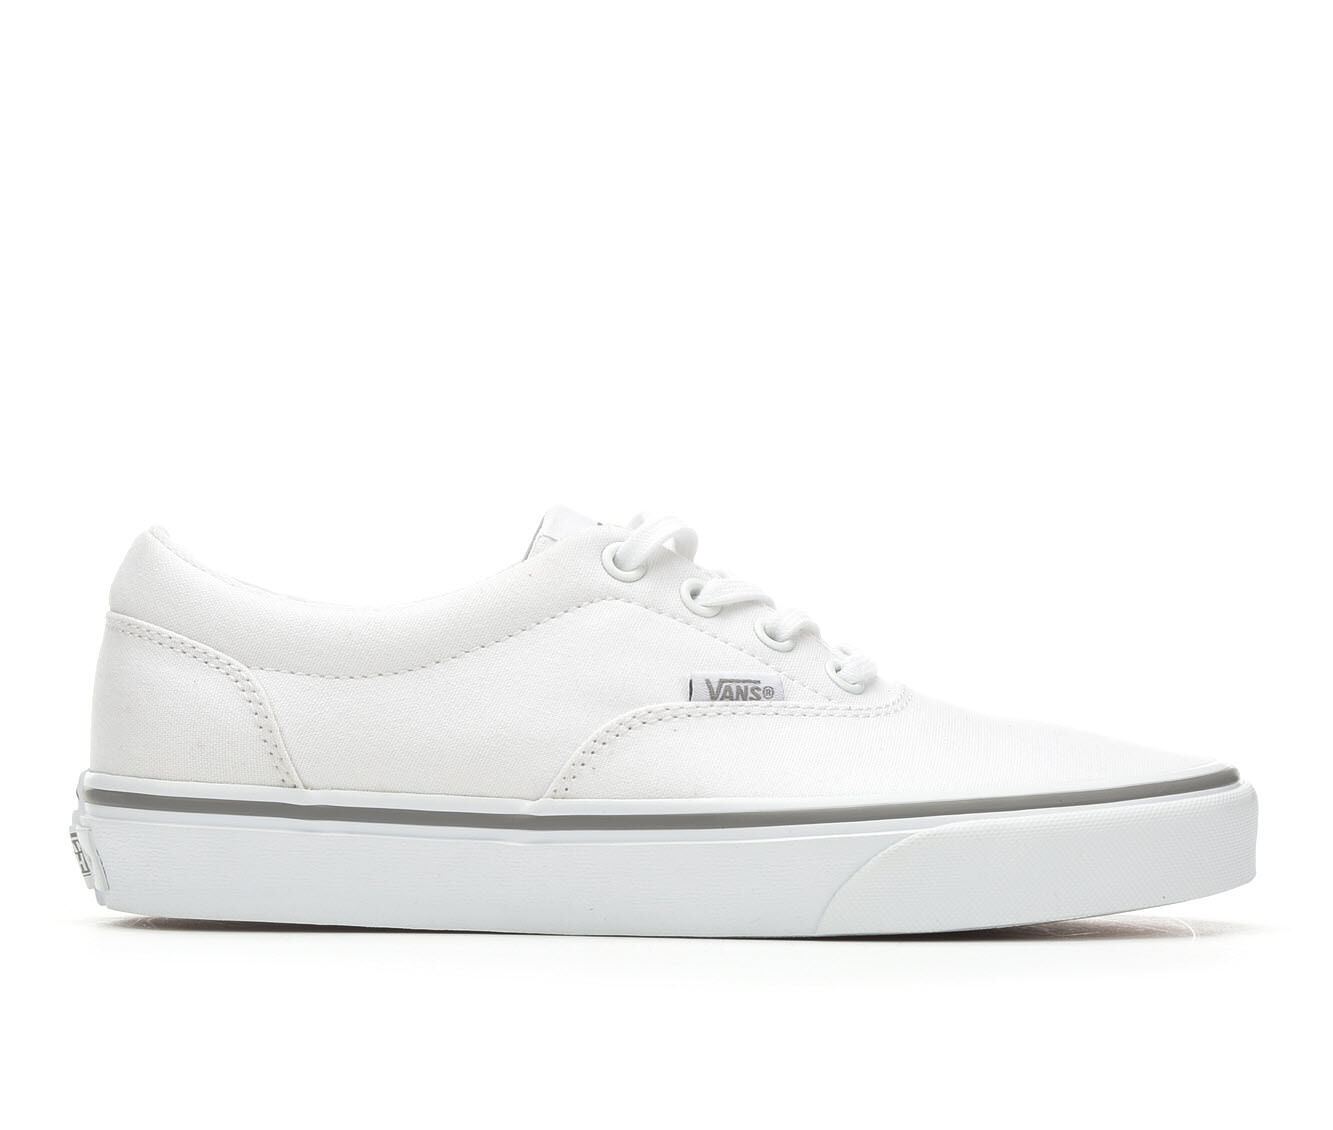 Women's Vans Doheny Skate Shoes White